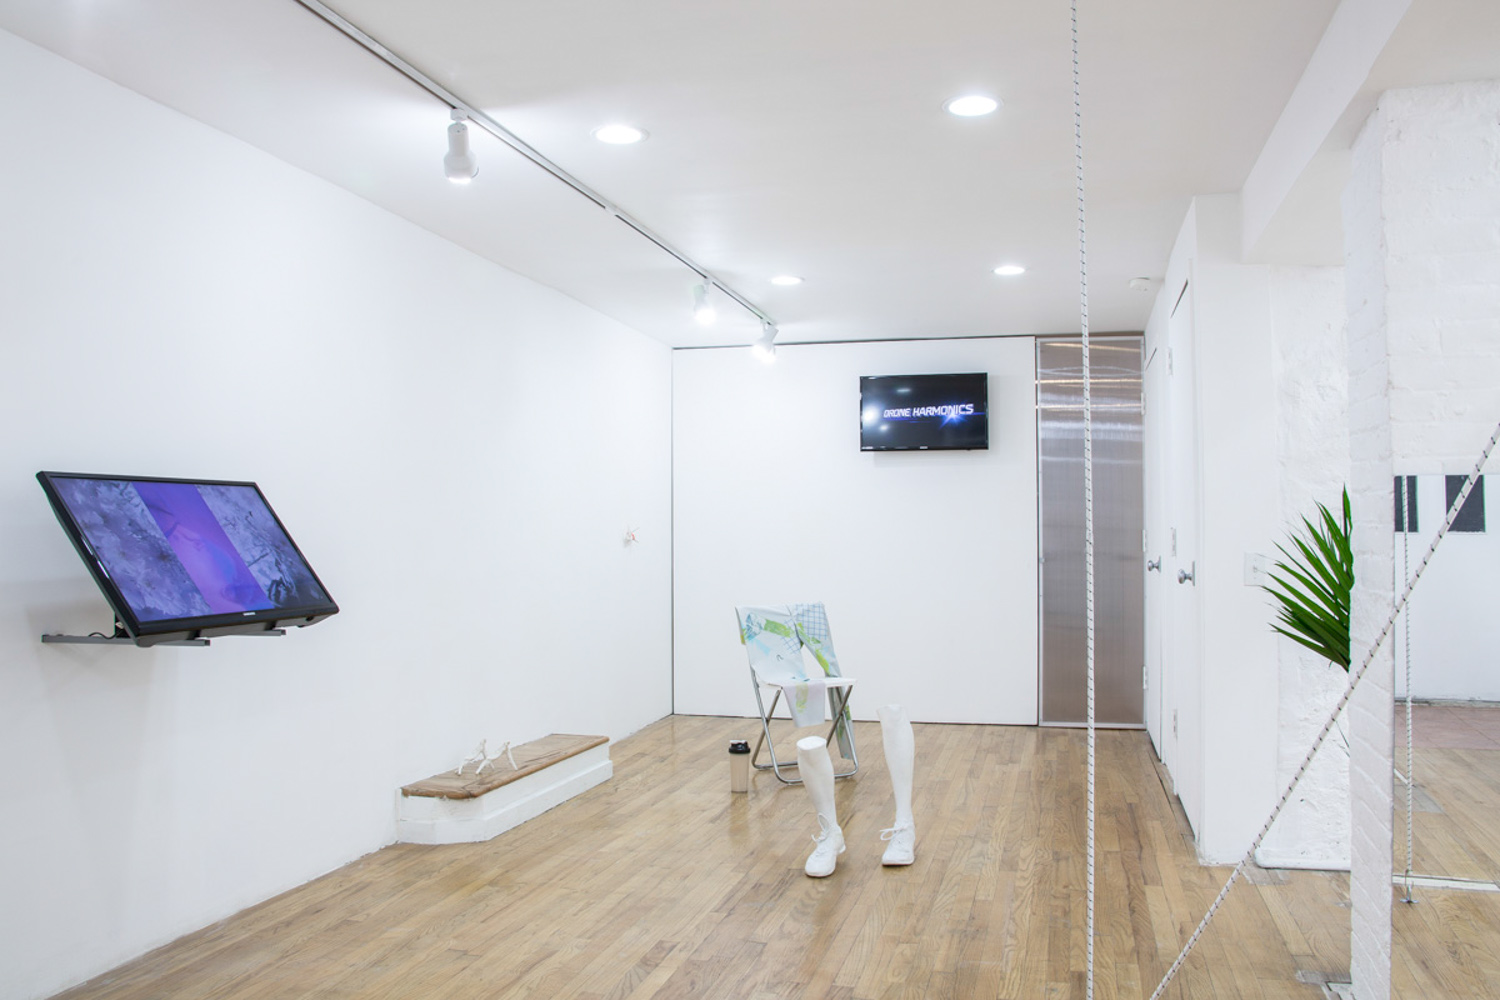 Pakui Hardware,  The Metaphysics of the Runner , exhibition view, 321 Gallery, May 2014